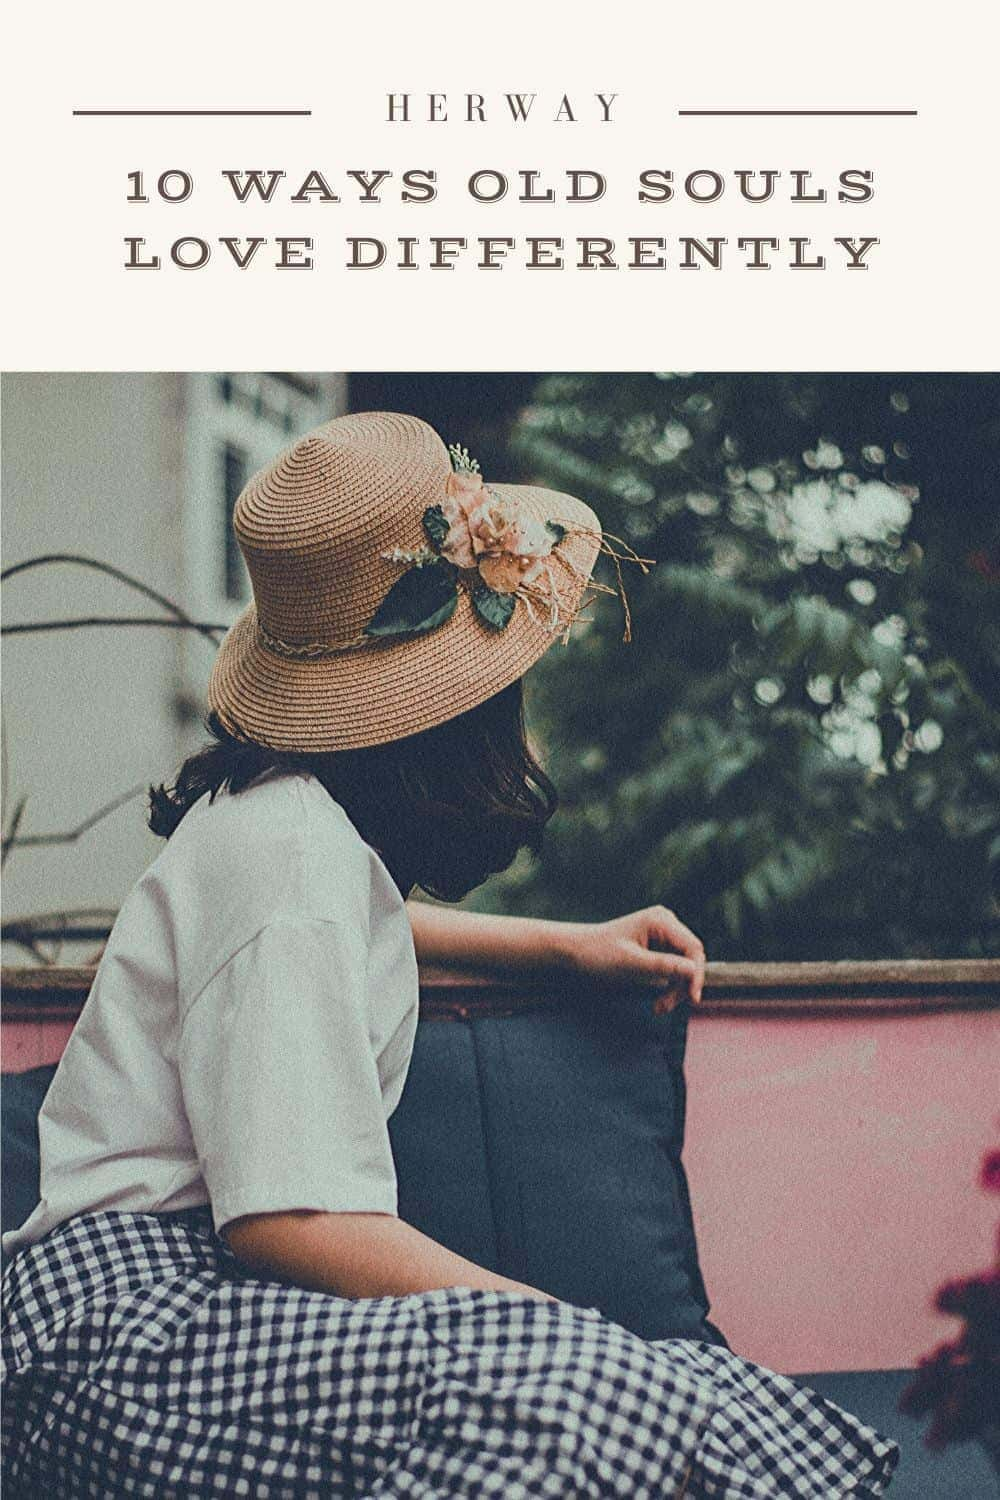 10 Ways Old Souls Love Differently